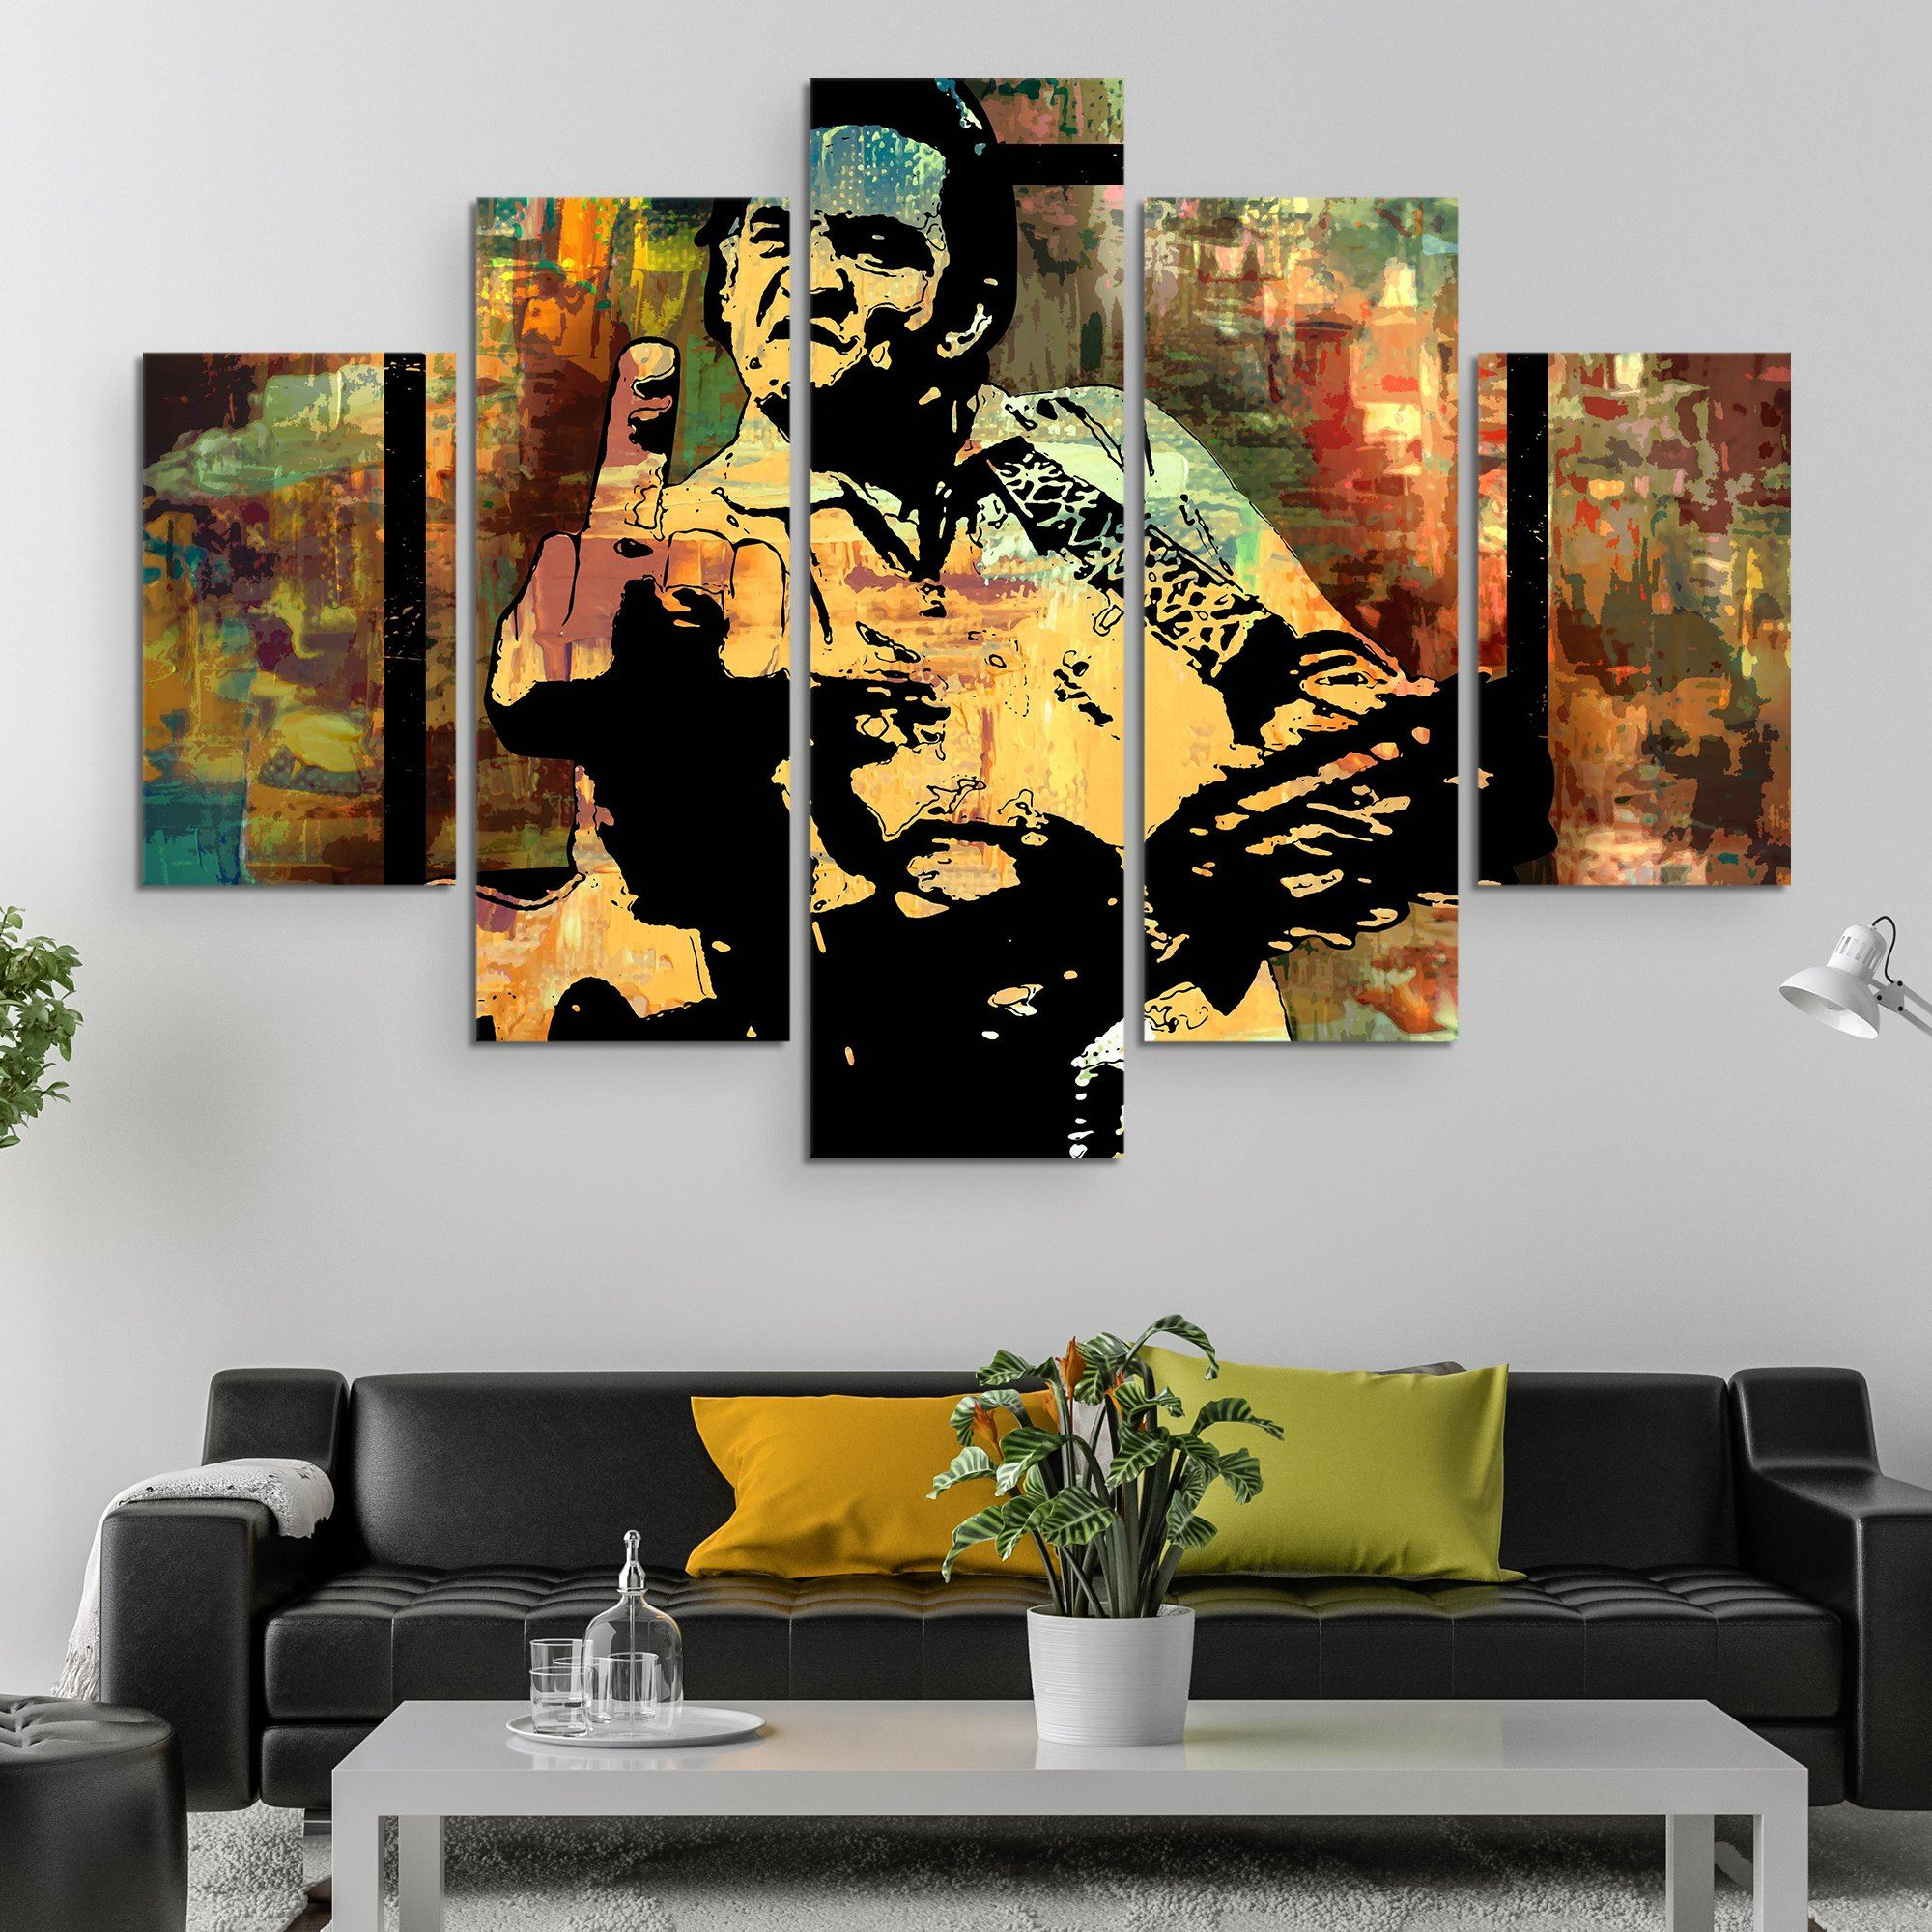 5 piece Johnny Cash Middle Finger wall art